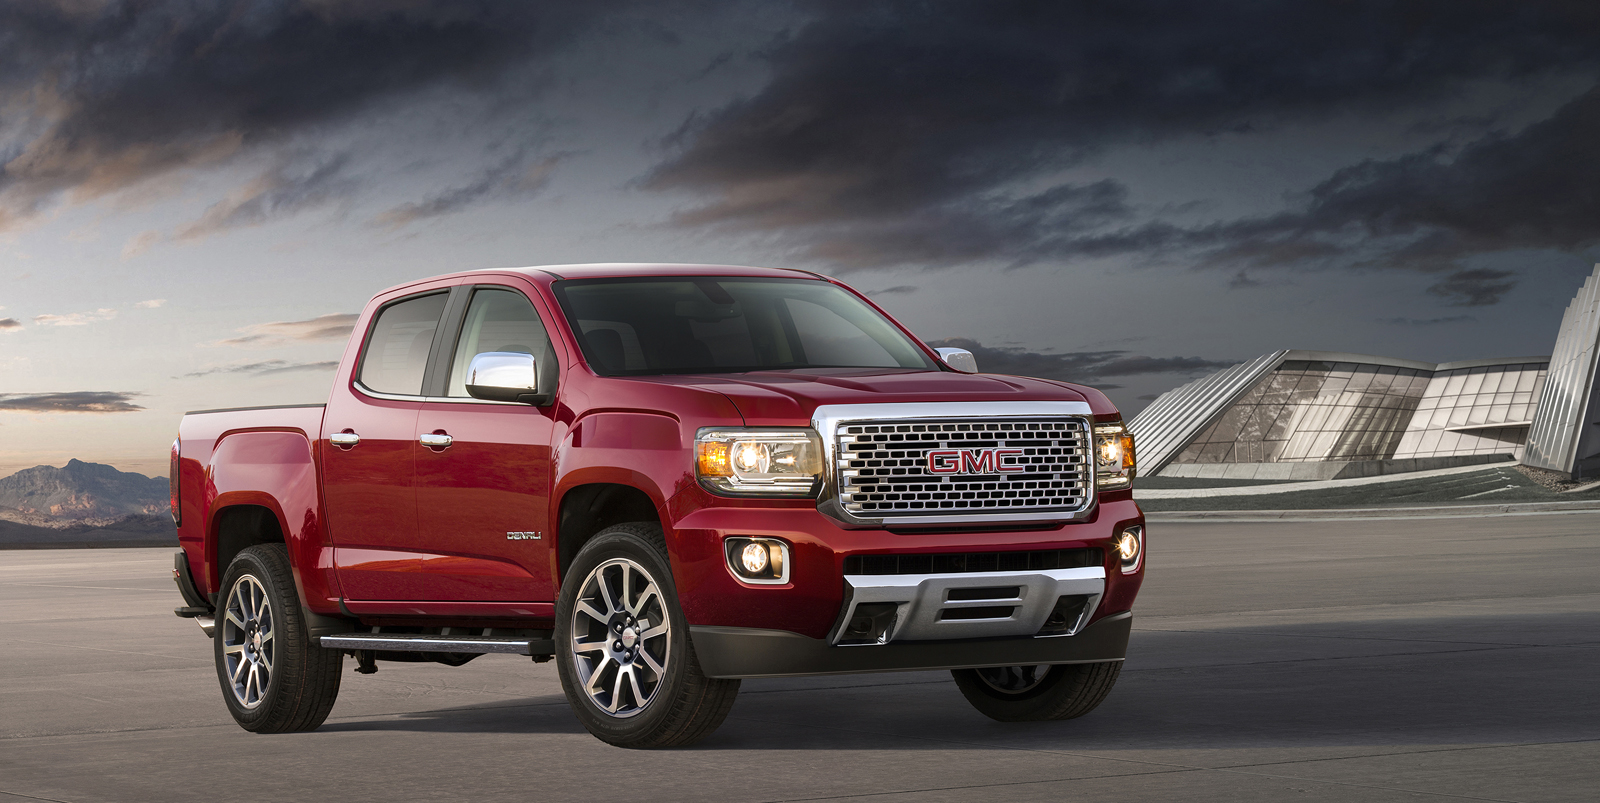 2017 gmc canyon adds eight speed auto all terrain x off road model news. Black Bedroom Furniture Sets. Home Design Ideas